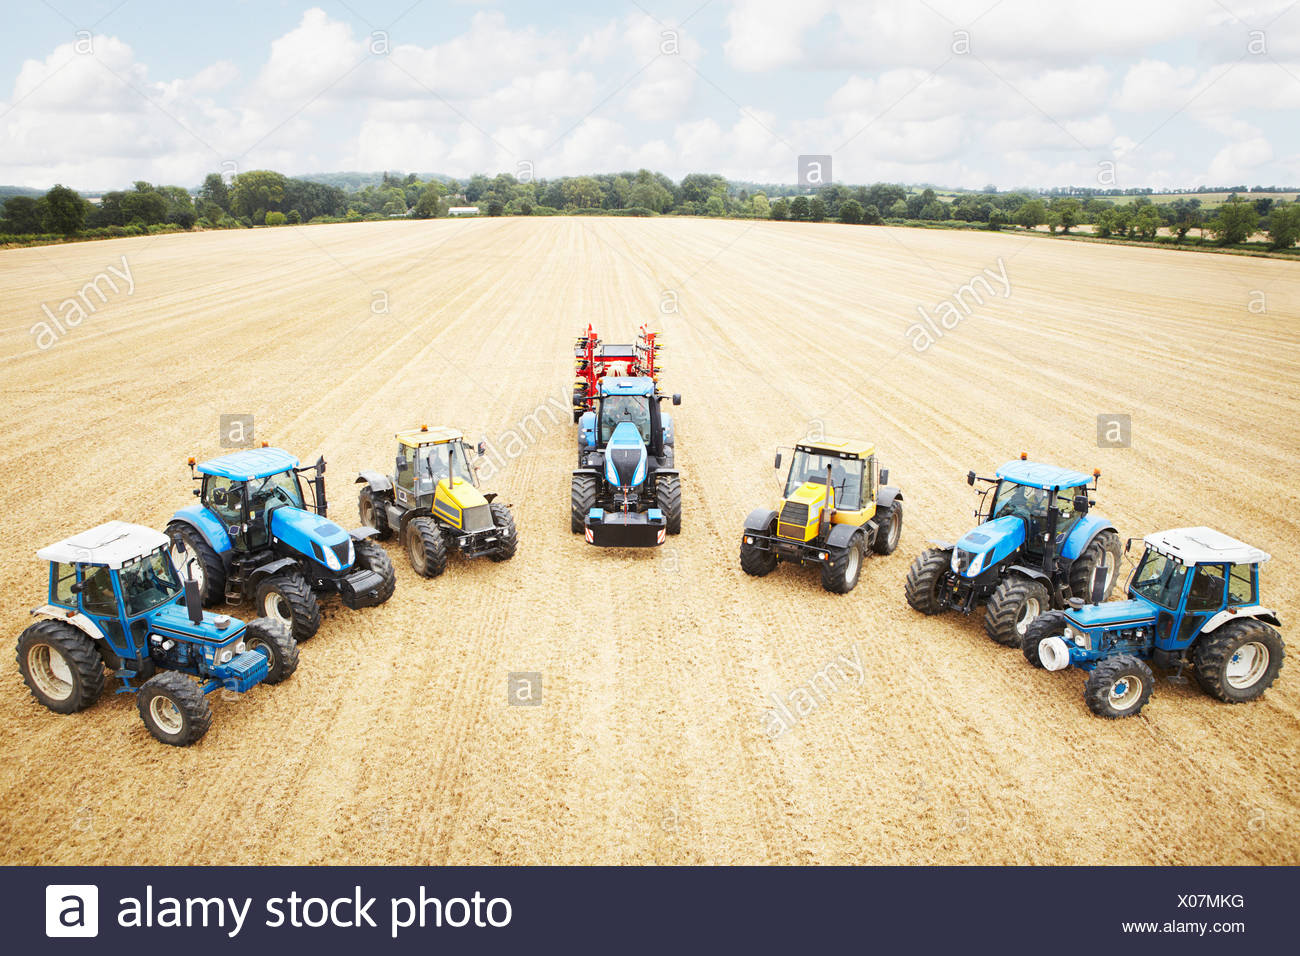 Tractors parked in tilled crop field - Stock Image